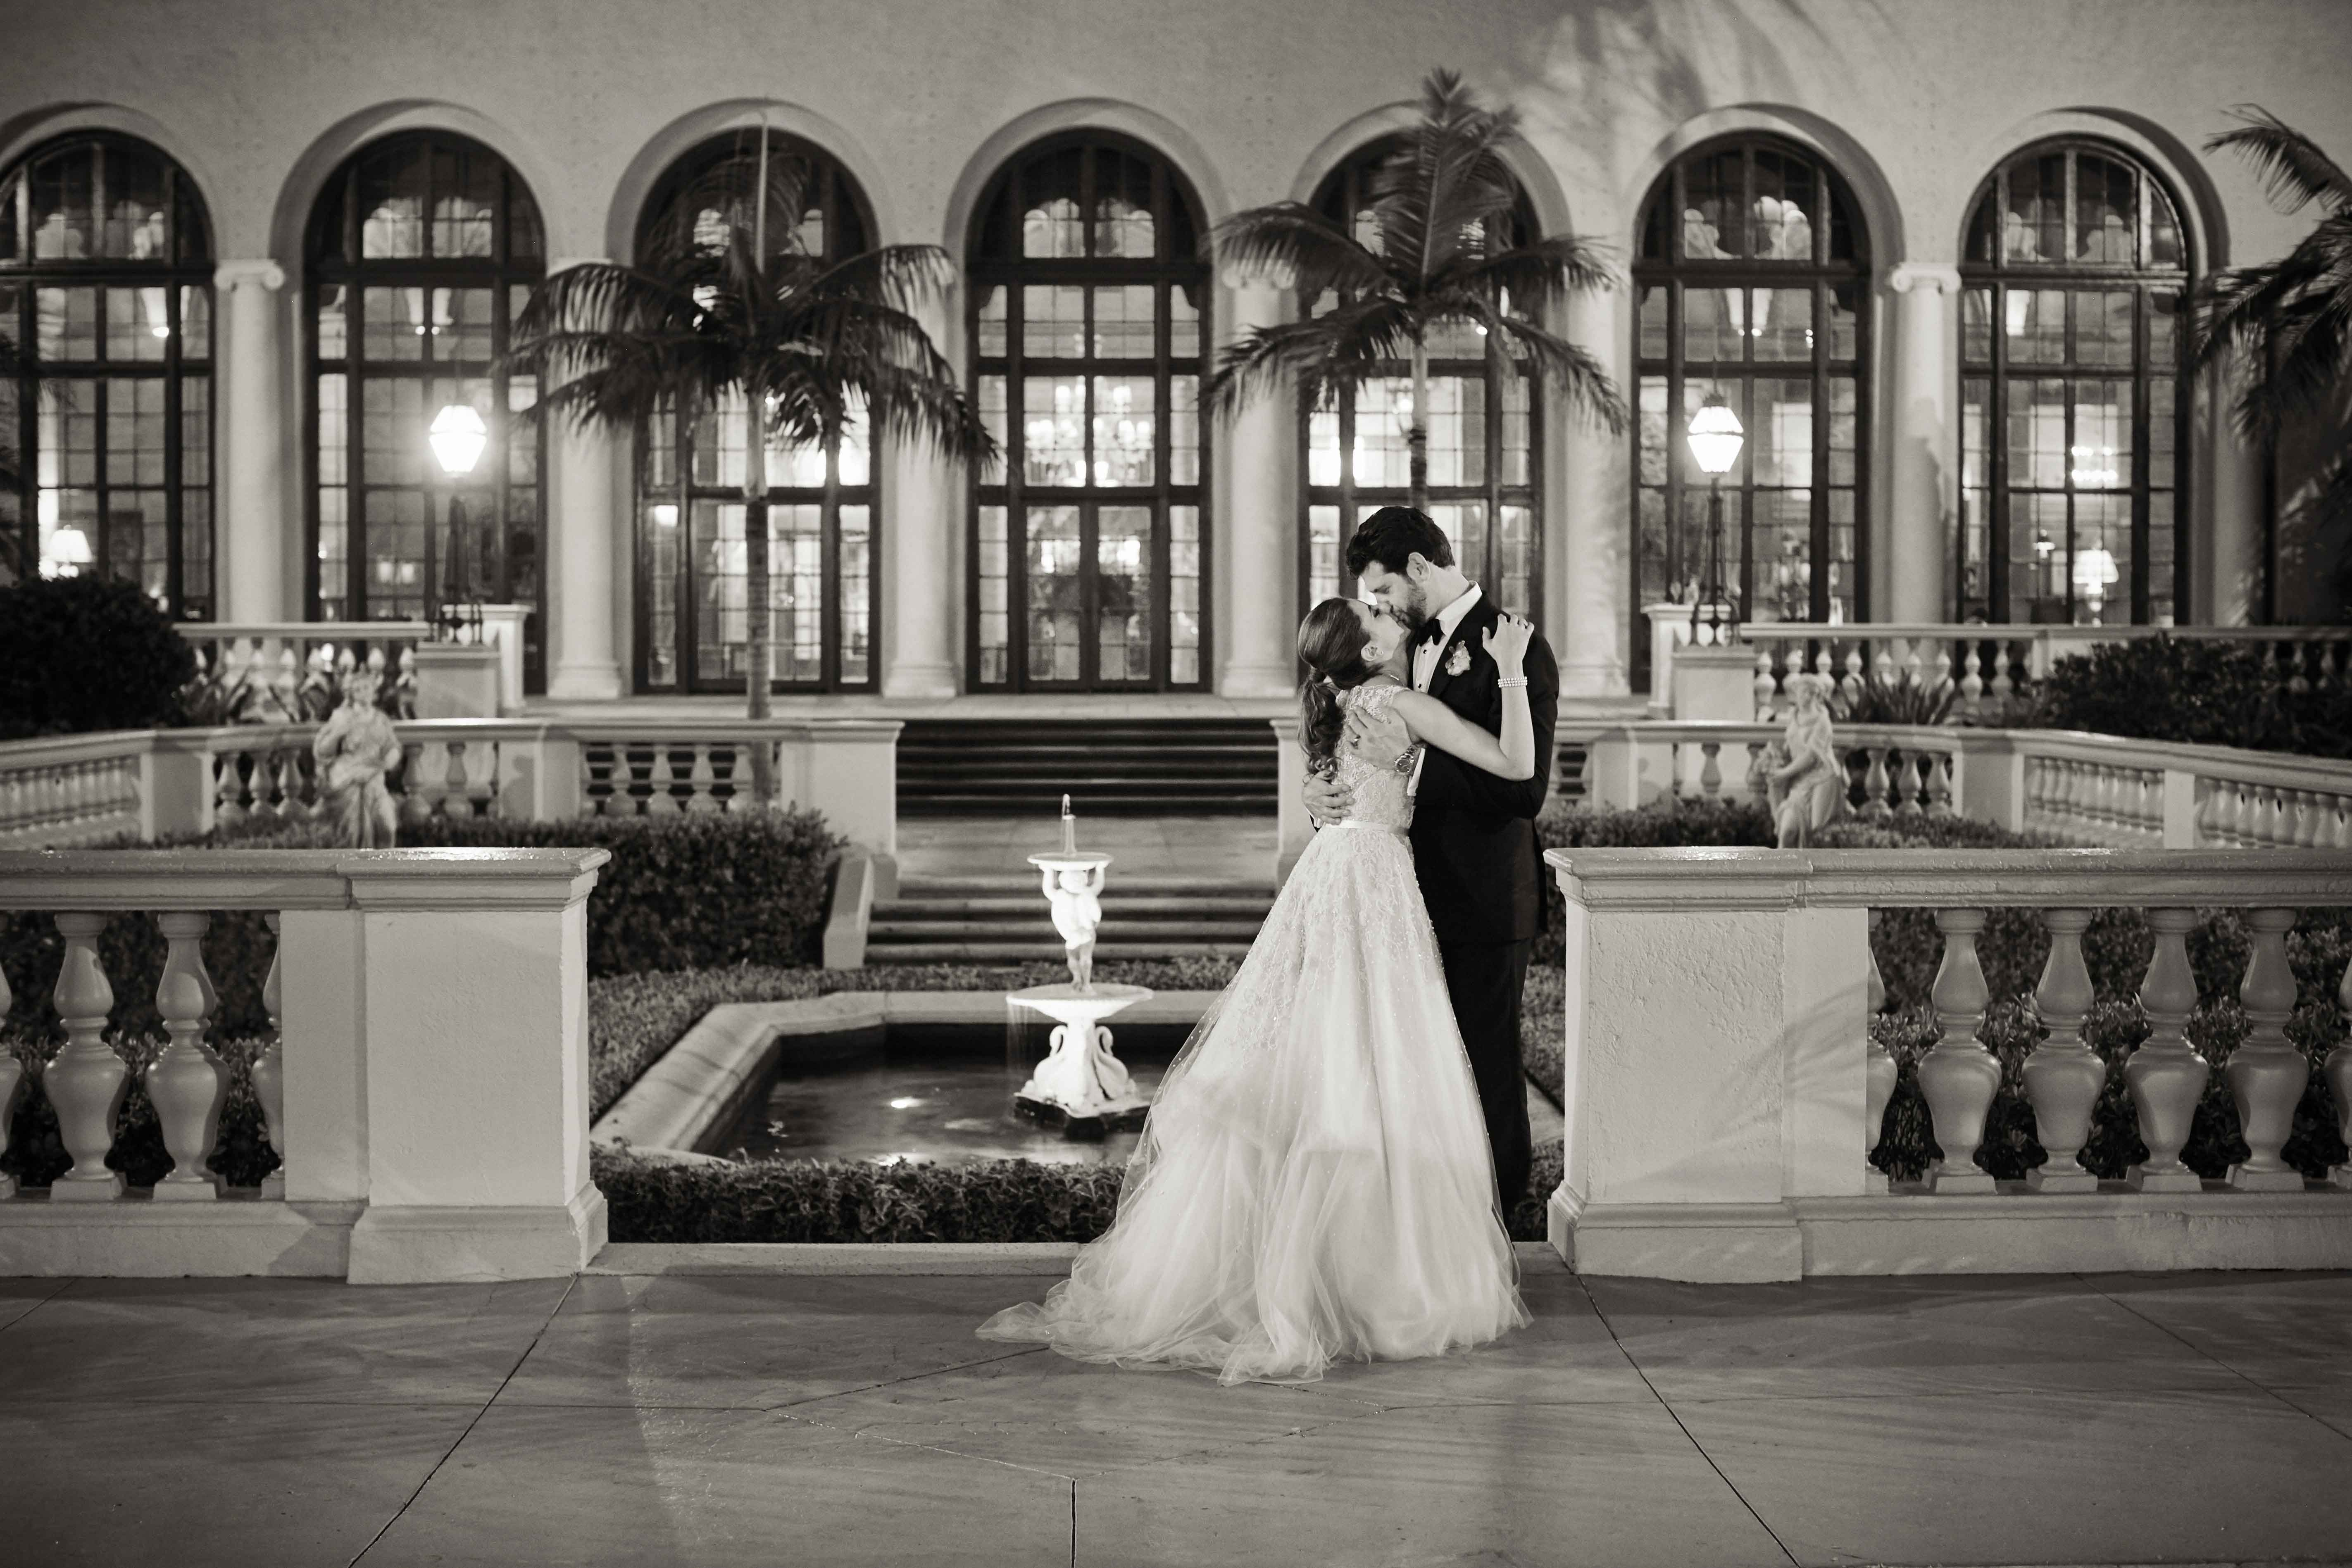 Black and white photo of bride and groom in front of The Breakers Inside Weddings winter 2017 issue